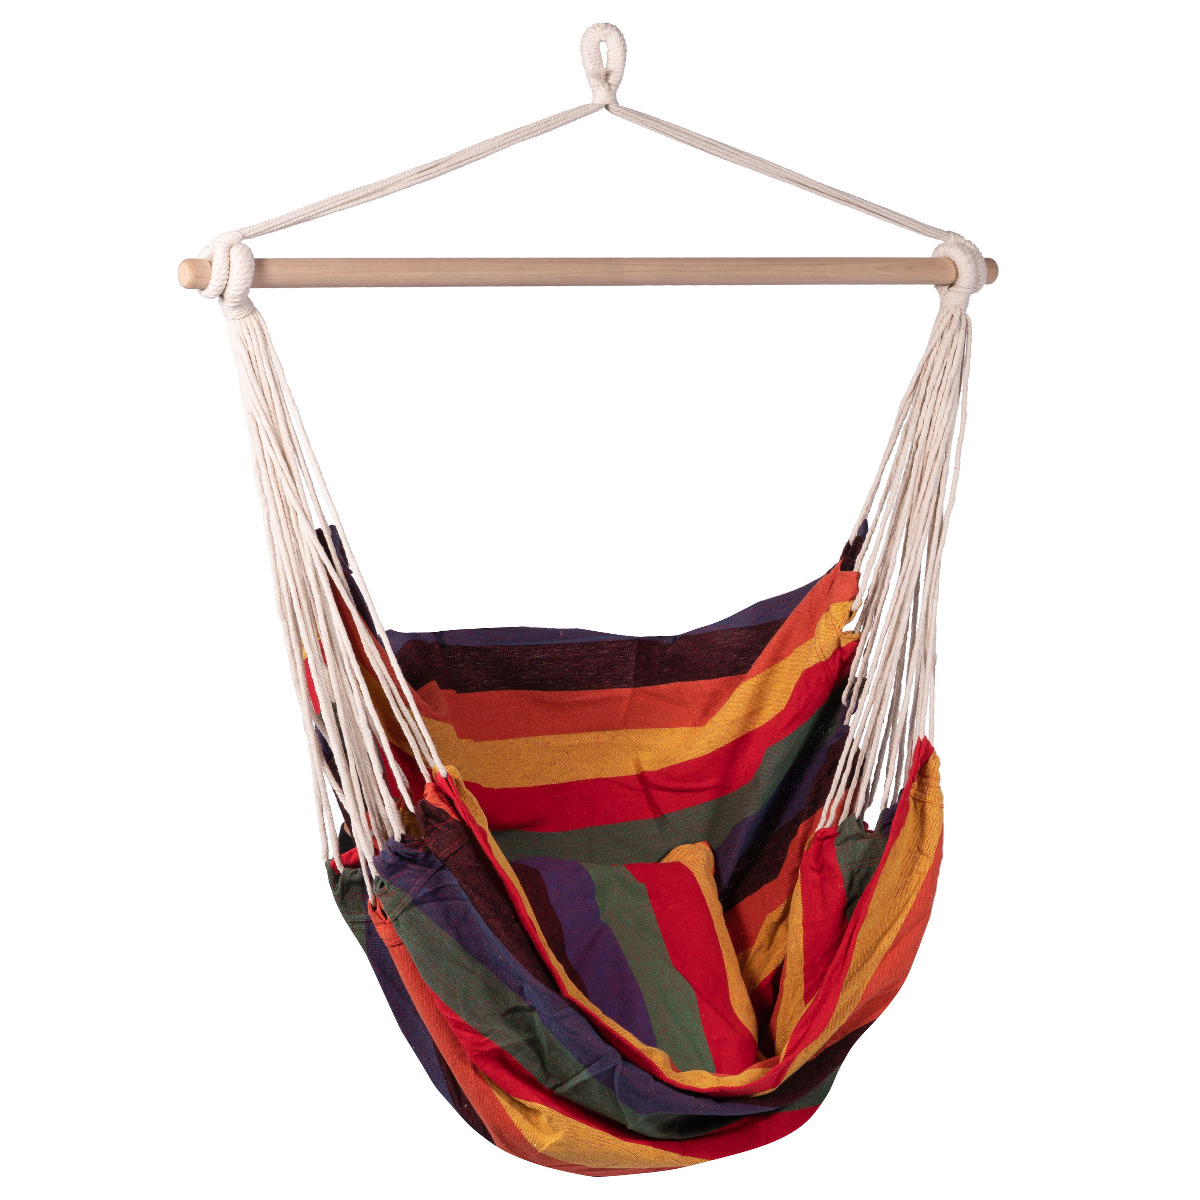 'Multi' Single Hangstoel - Veelkleurig - 123 Hammock